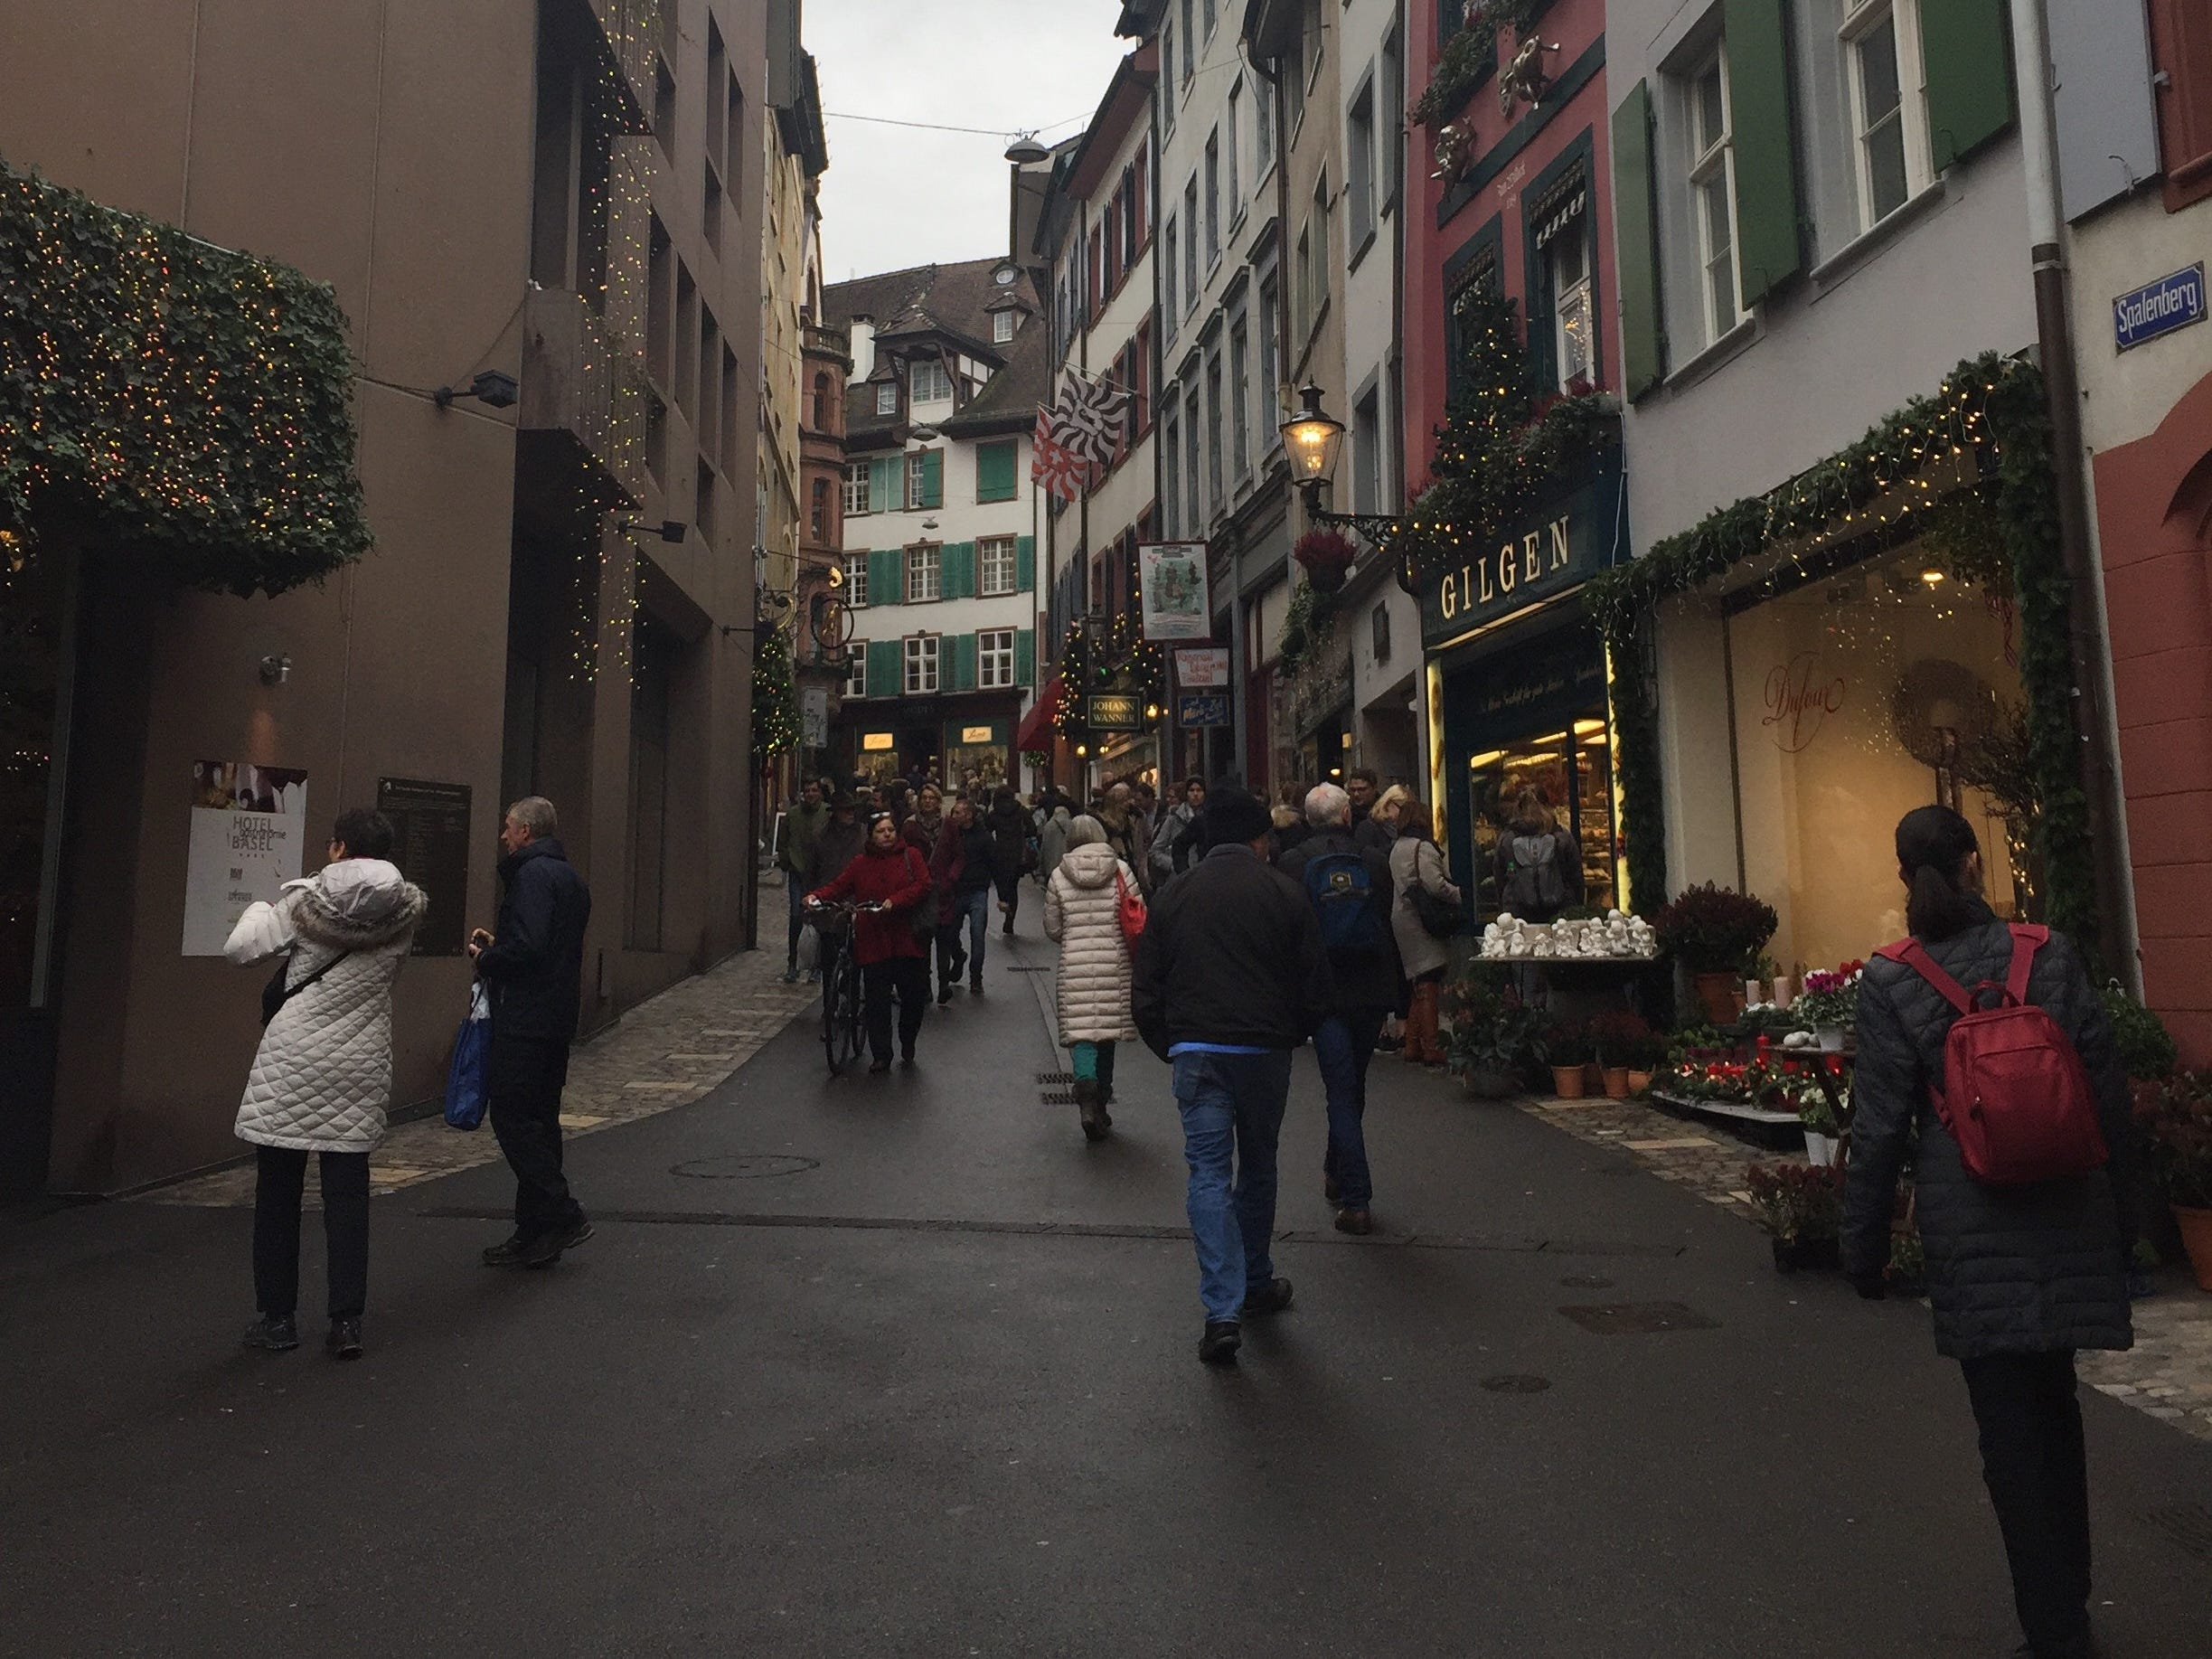 The lively shopping street leads to the historic city gate. Gilgen bakery, on the right, is very popular for its traditional Christmas specialties.